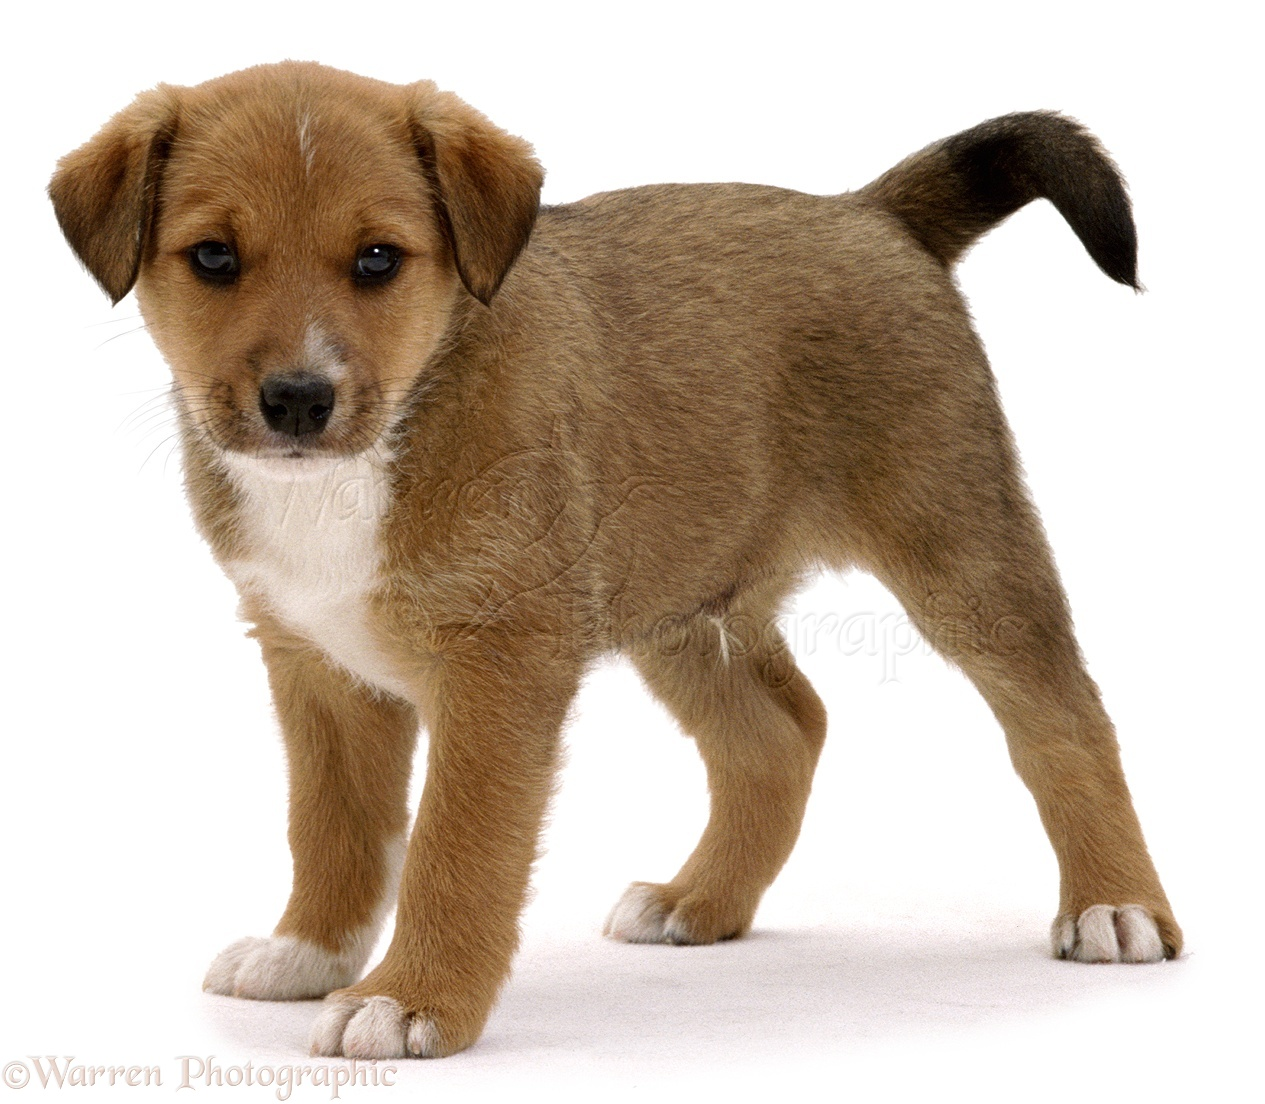 Dog Small brown puppy photo WP